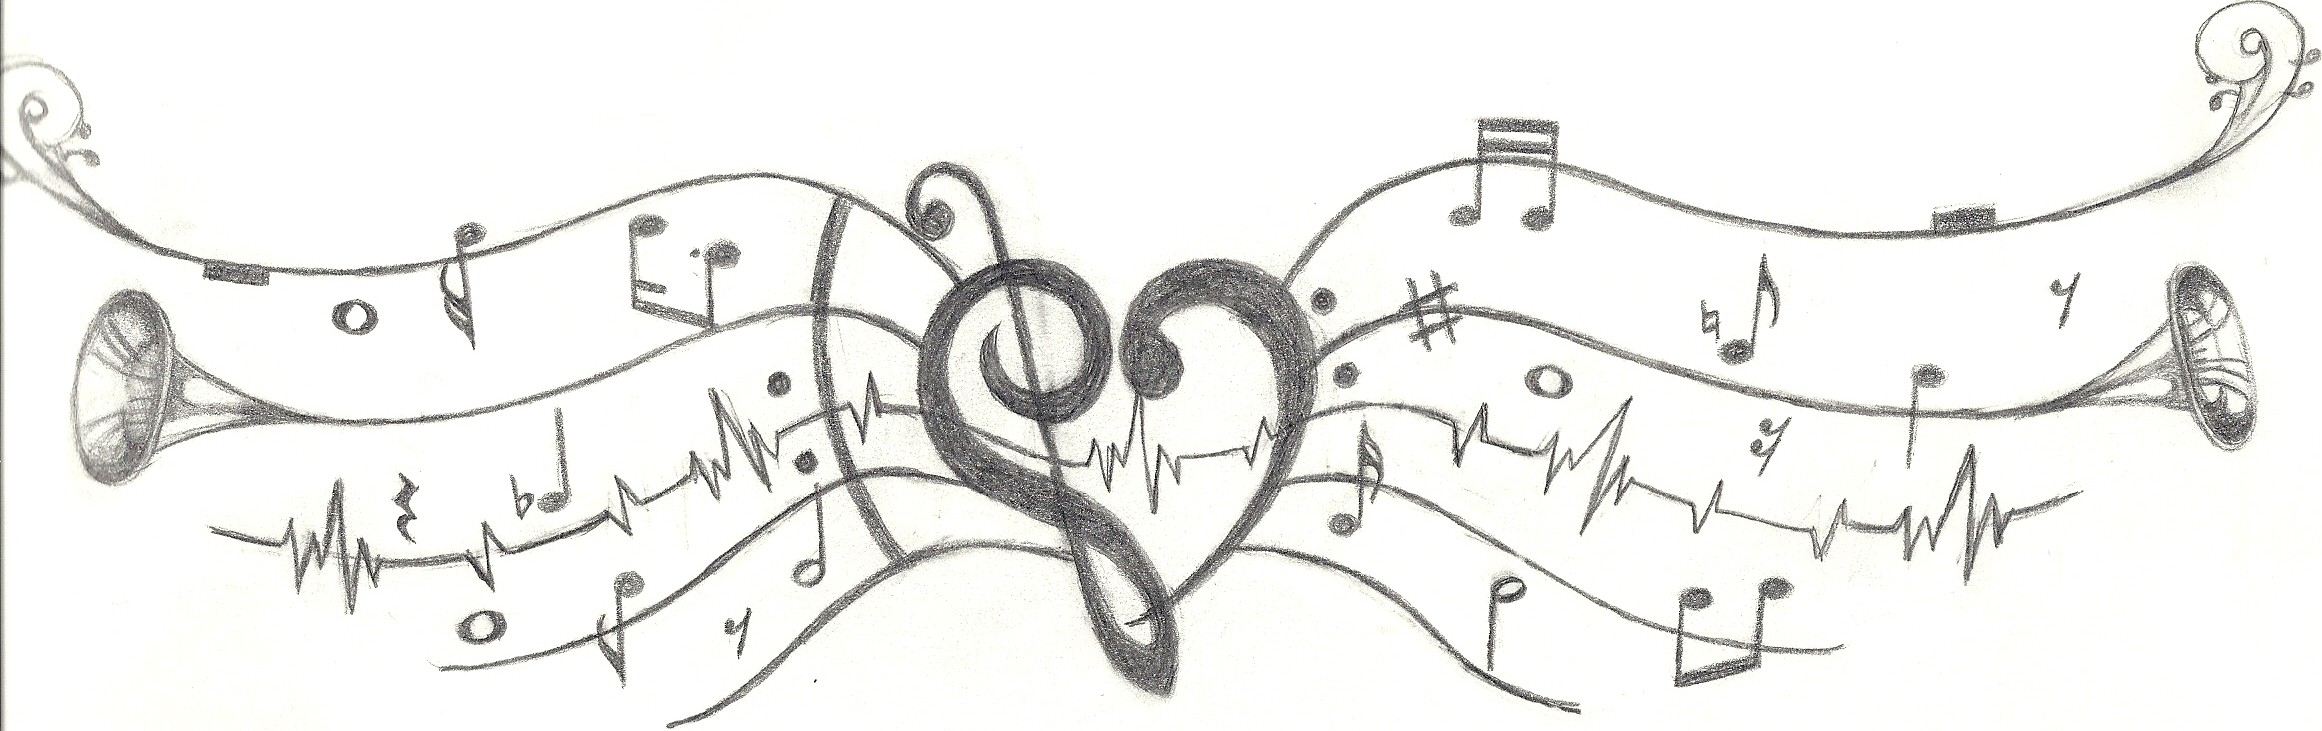 Music Makes The Heart Soar by starblu314